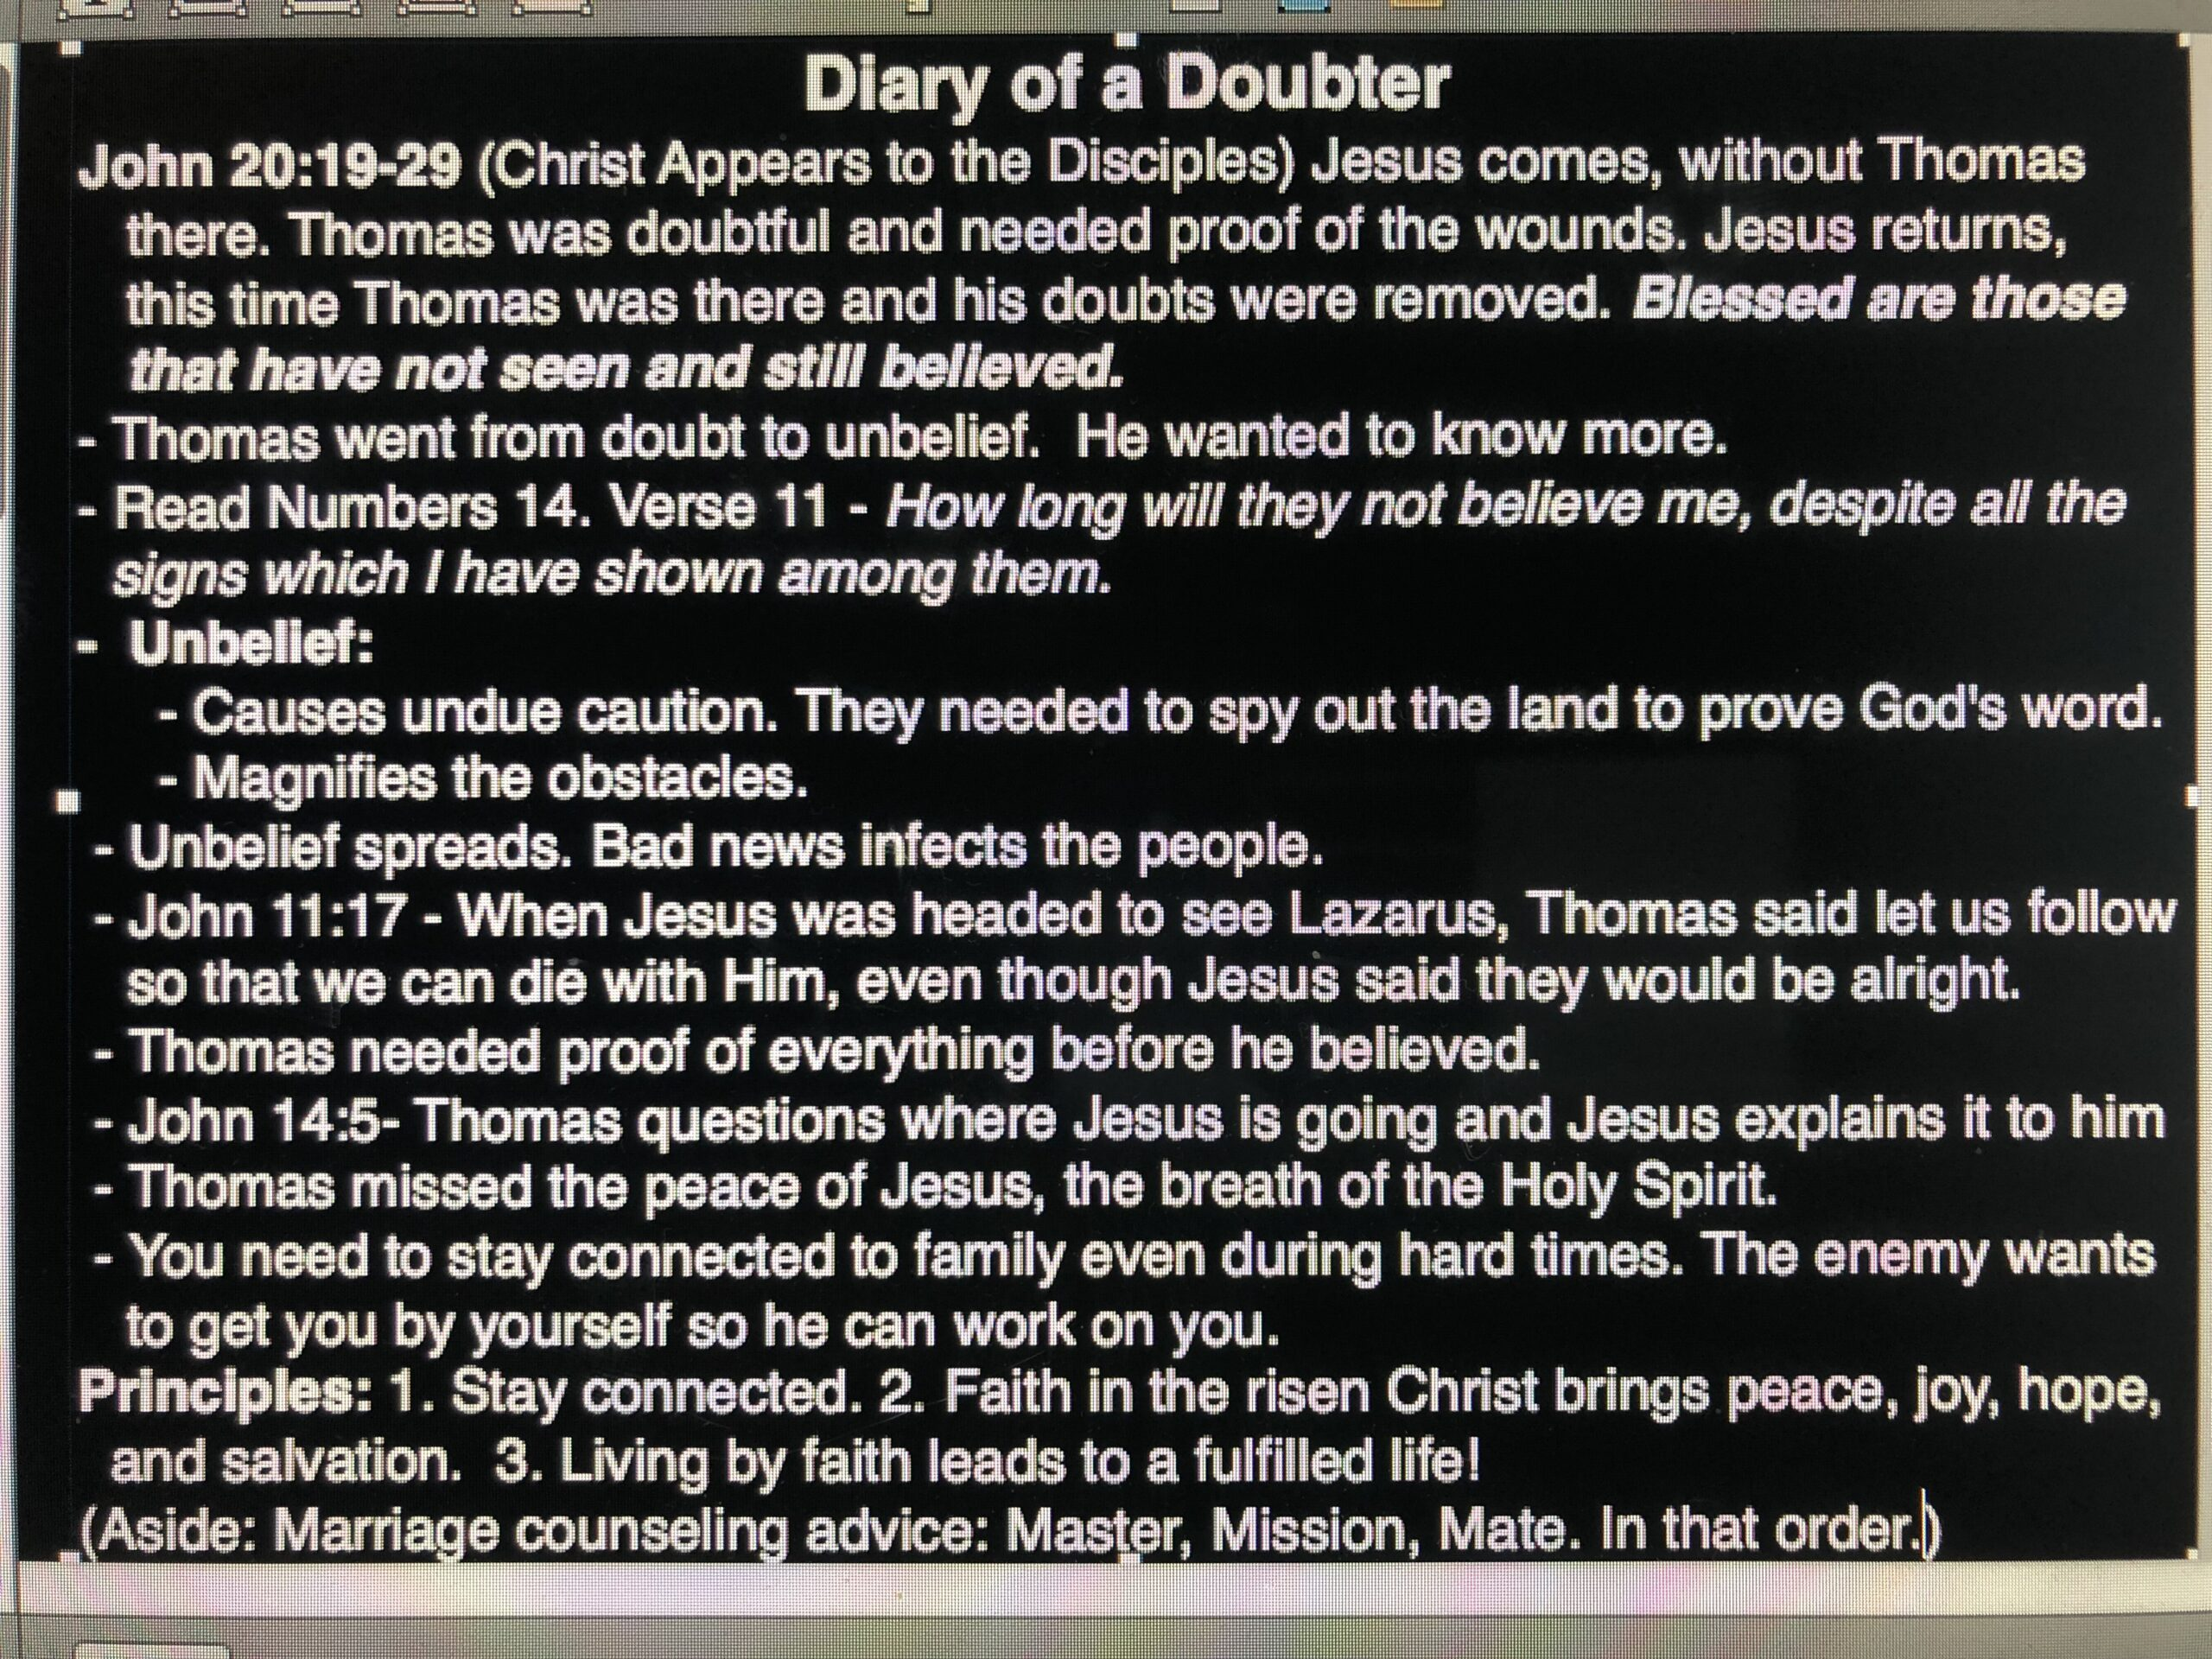 Diary of a Doubter - April 28, 2019